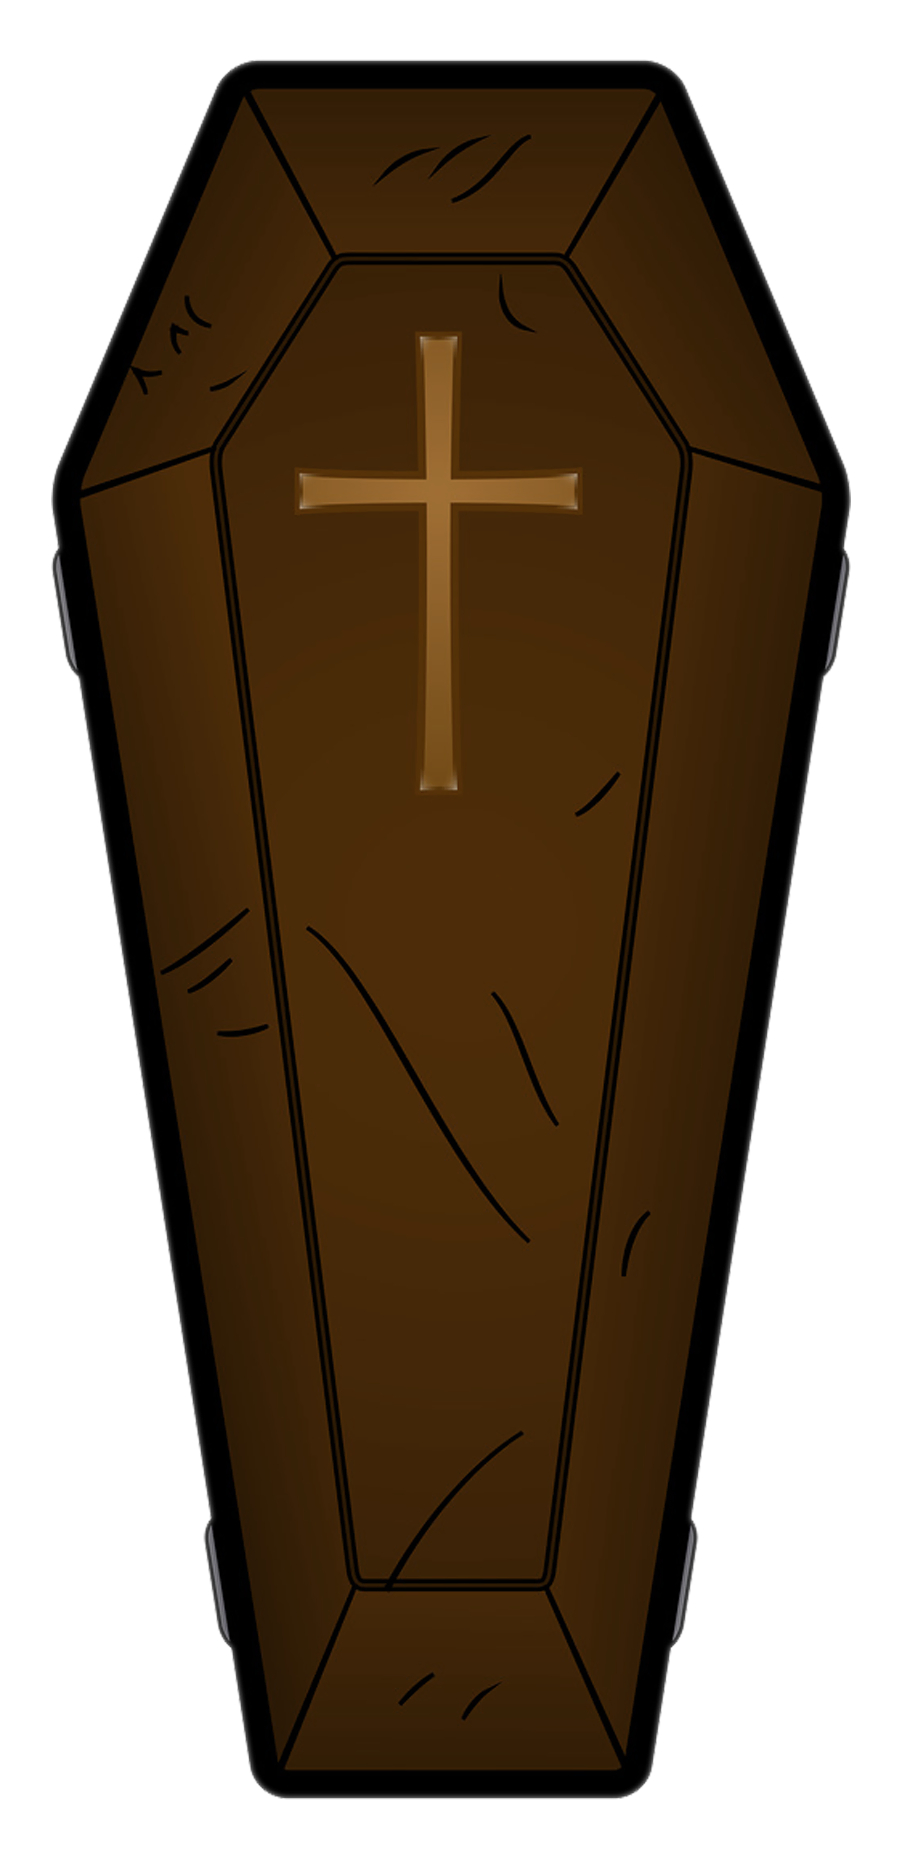 Coffin clipart. Halloween brown png picture